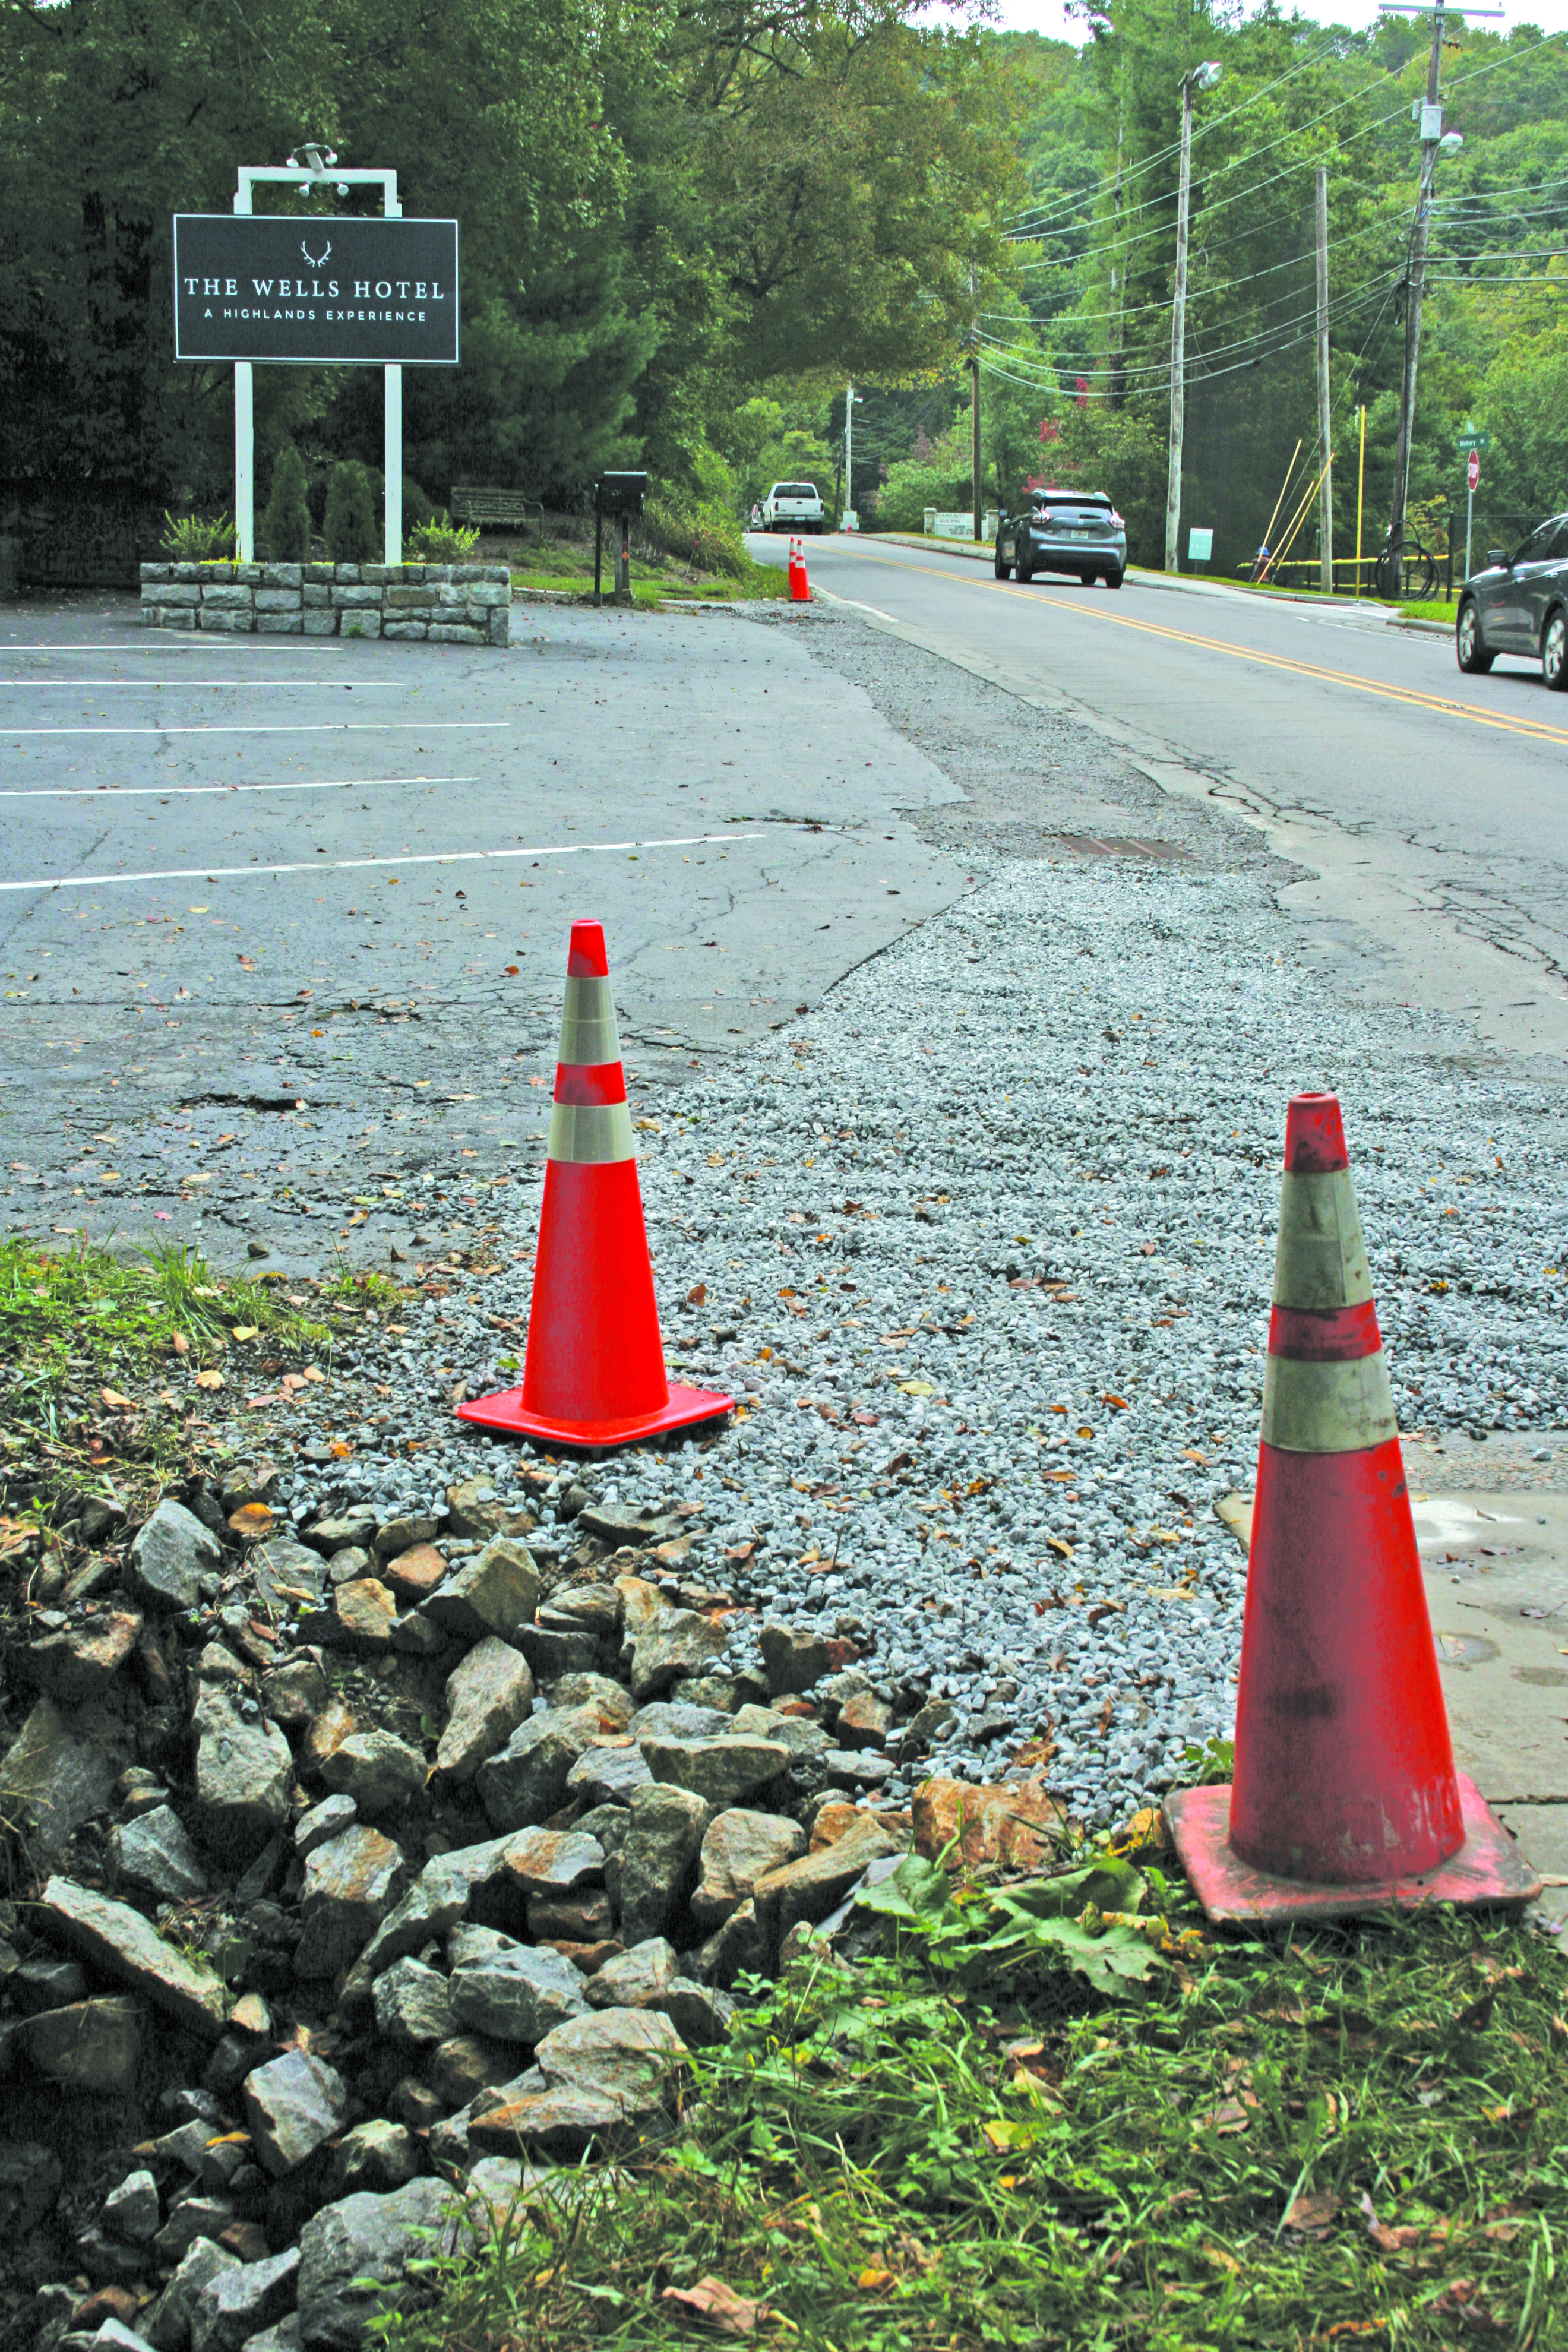 The Town of Highlands recently completed a drainage improvement project along 4th Street near the intersection of Martha's Lane.